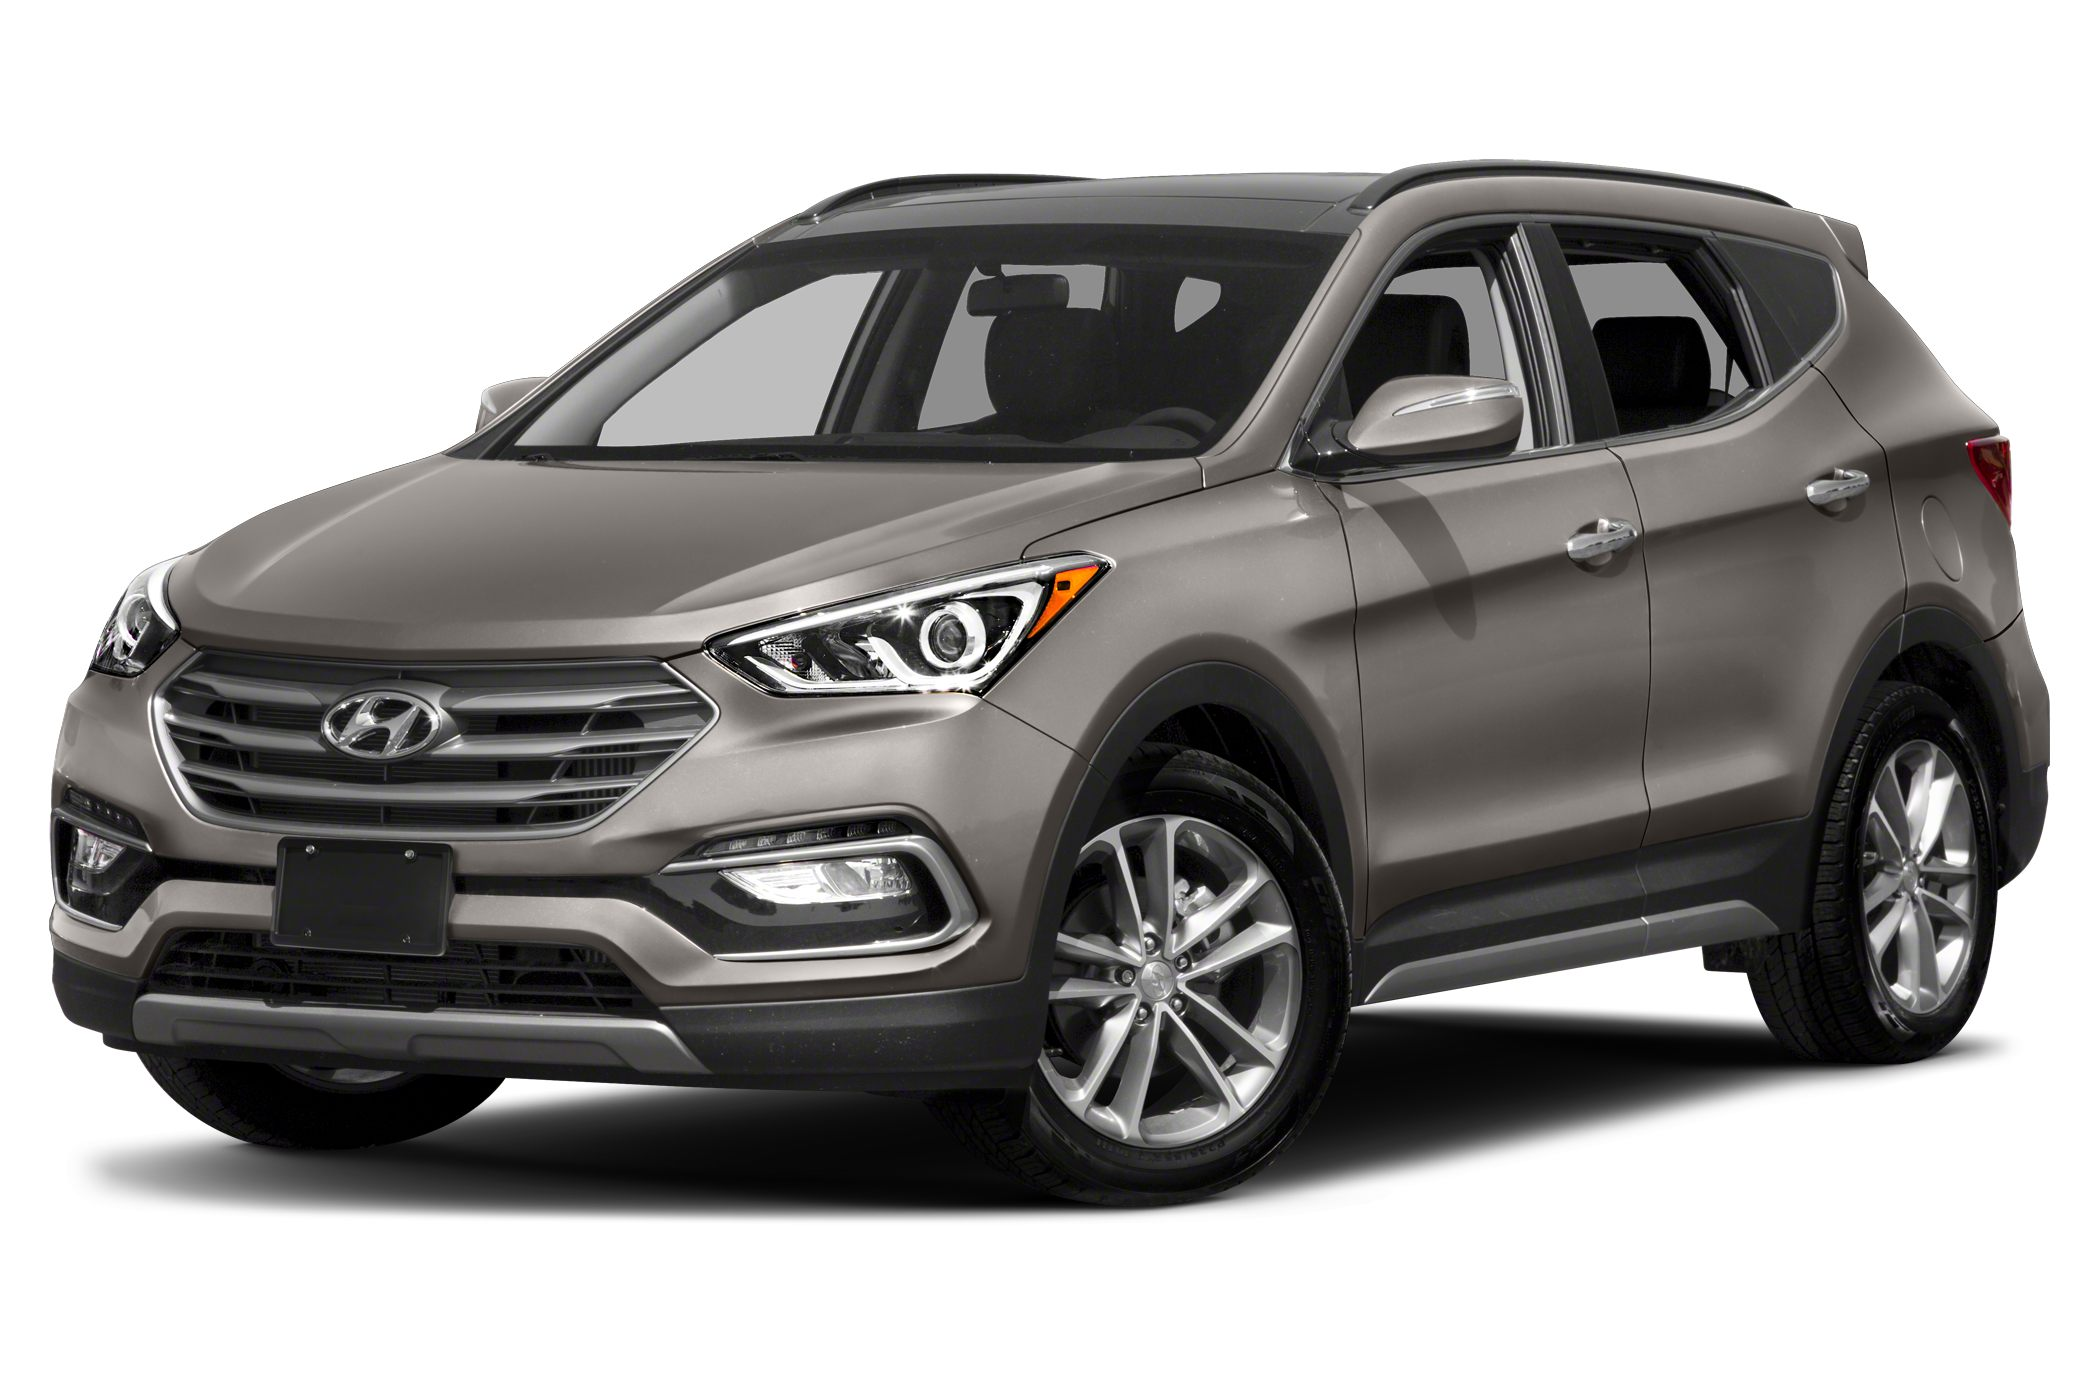 Hyundai Canada Incentives for the new 2021 Hyundai Santa Fe Sport Crossover SUV in Milton, Toronto, and the GTA